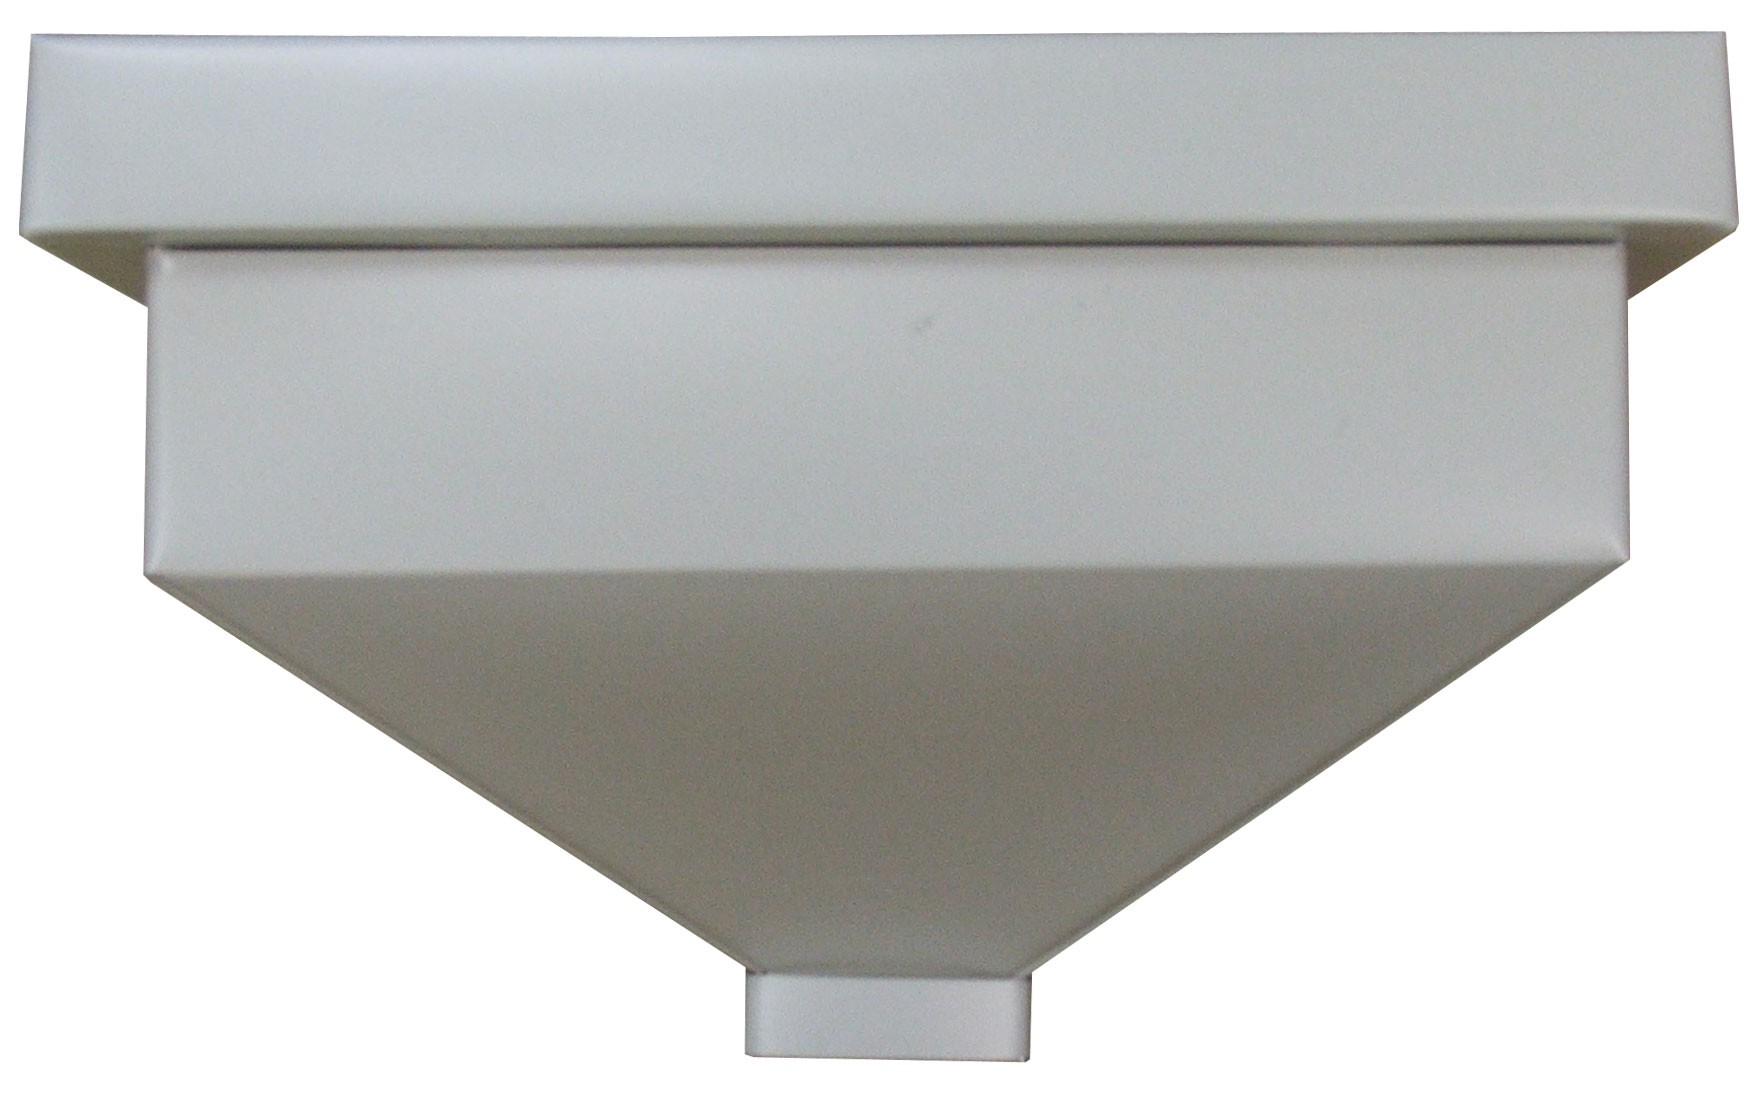 Leader Heads And Conductor Heads : Plain conductor heads downspouts